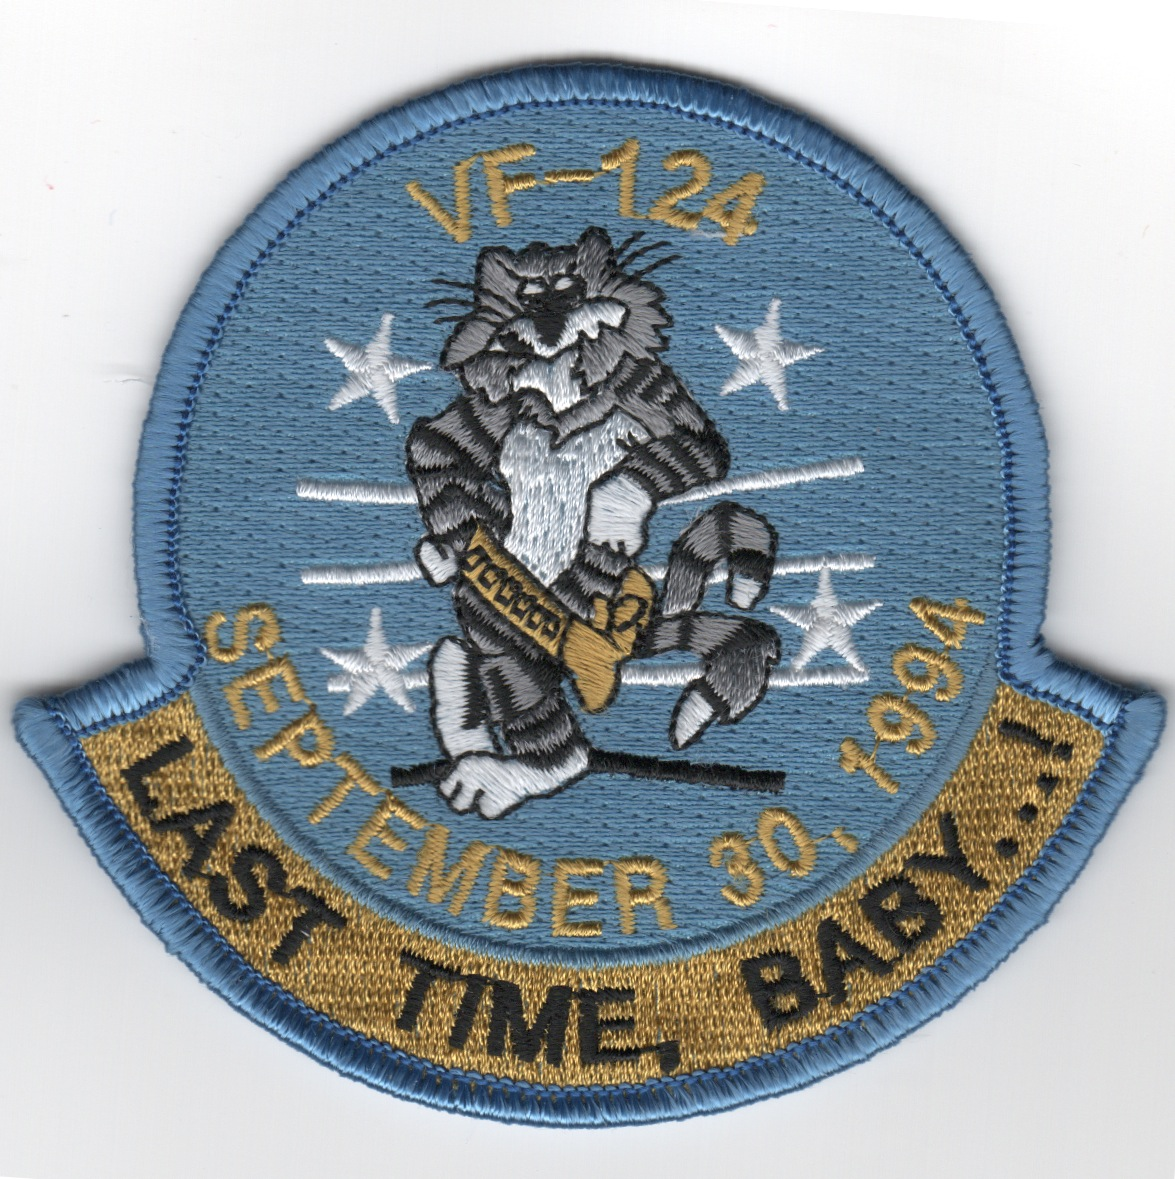 VF-124 'Last Time, Baby' Patch